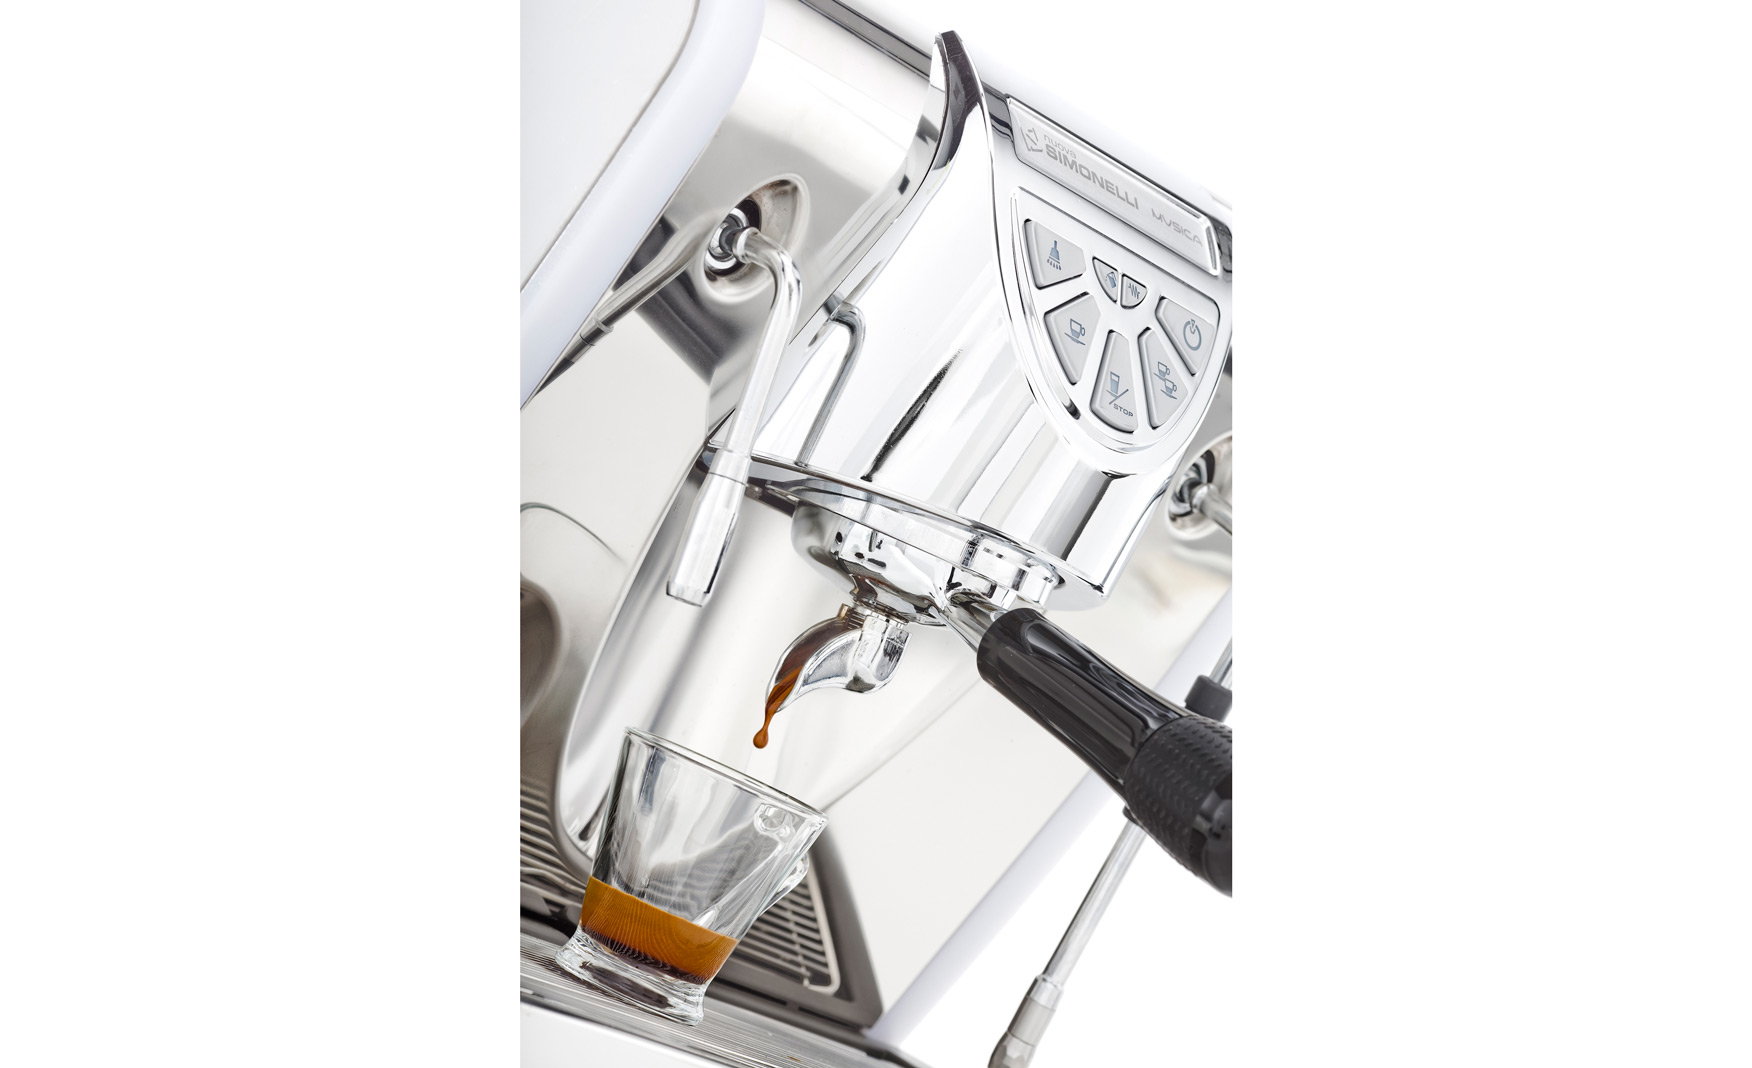 Nuova Simonelli Home or Office Espresso Equipment